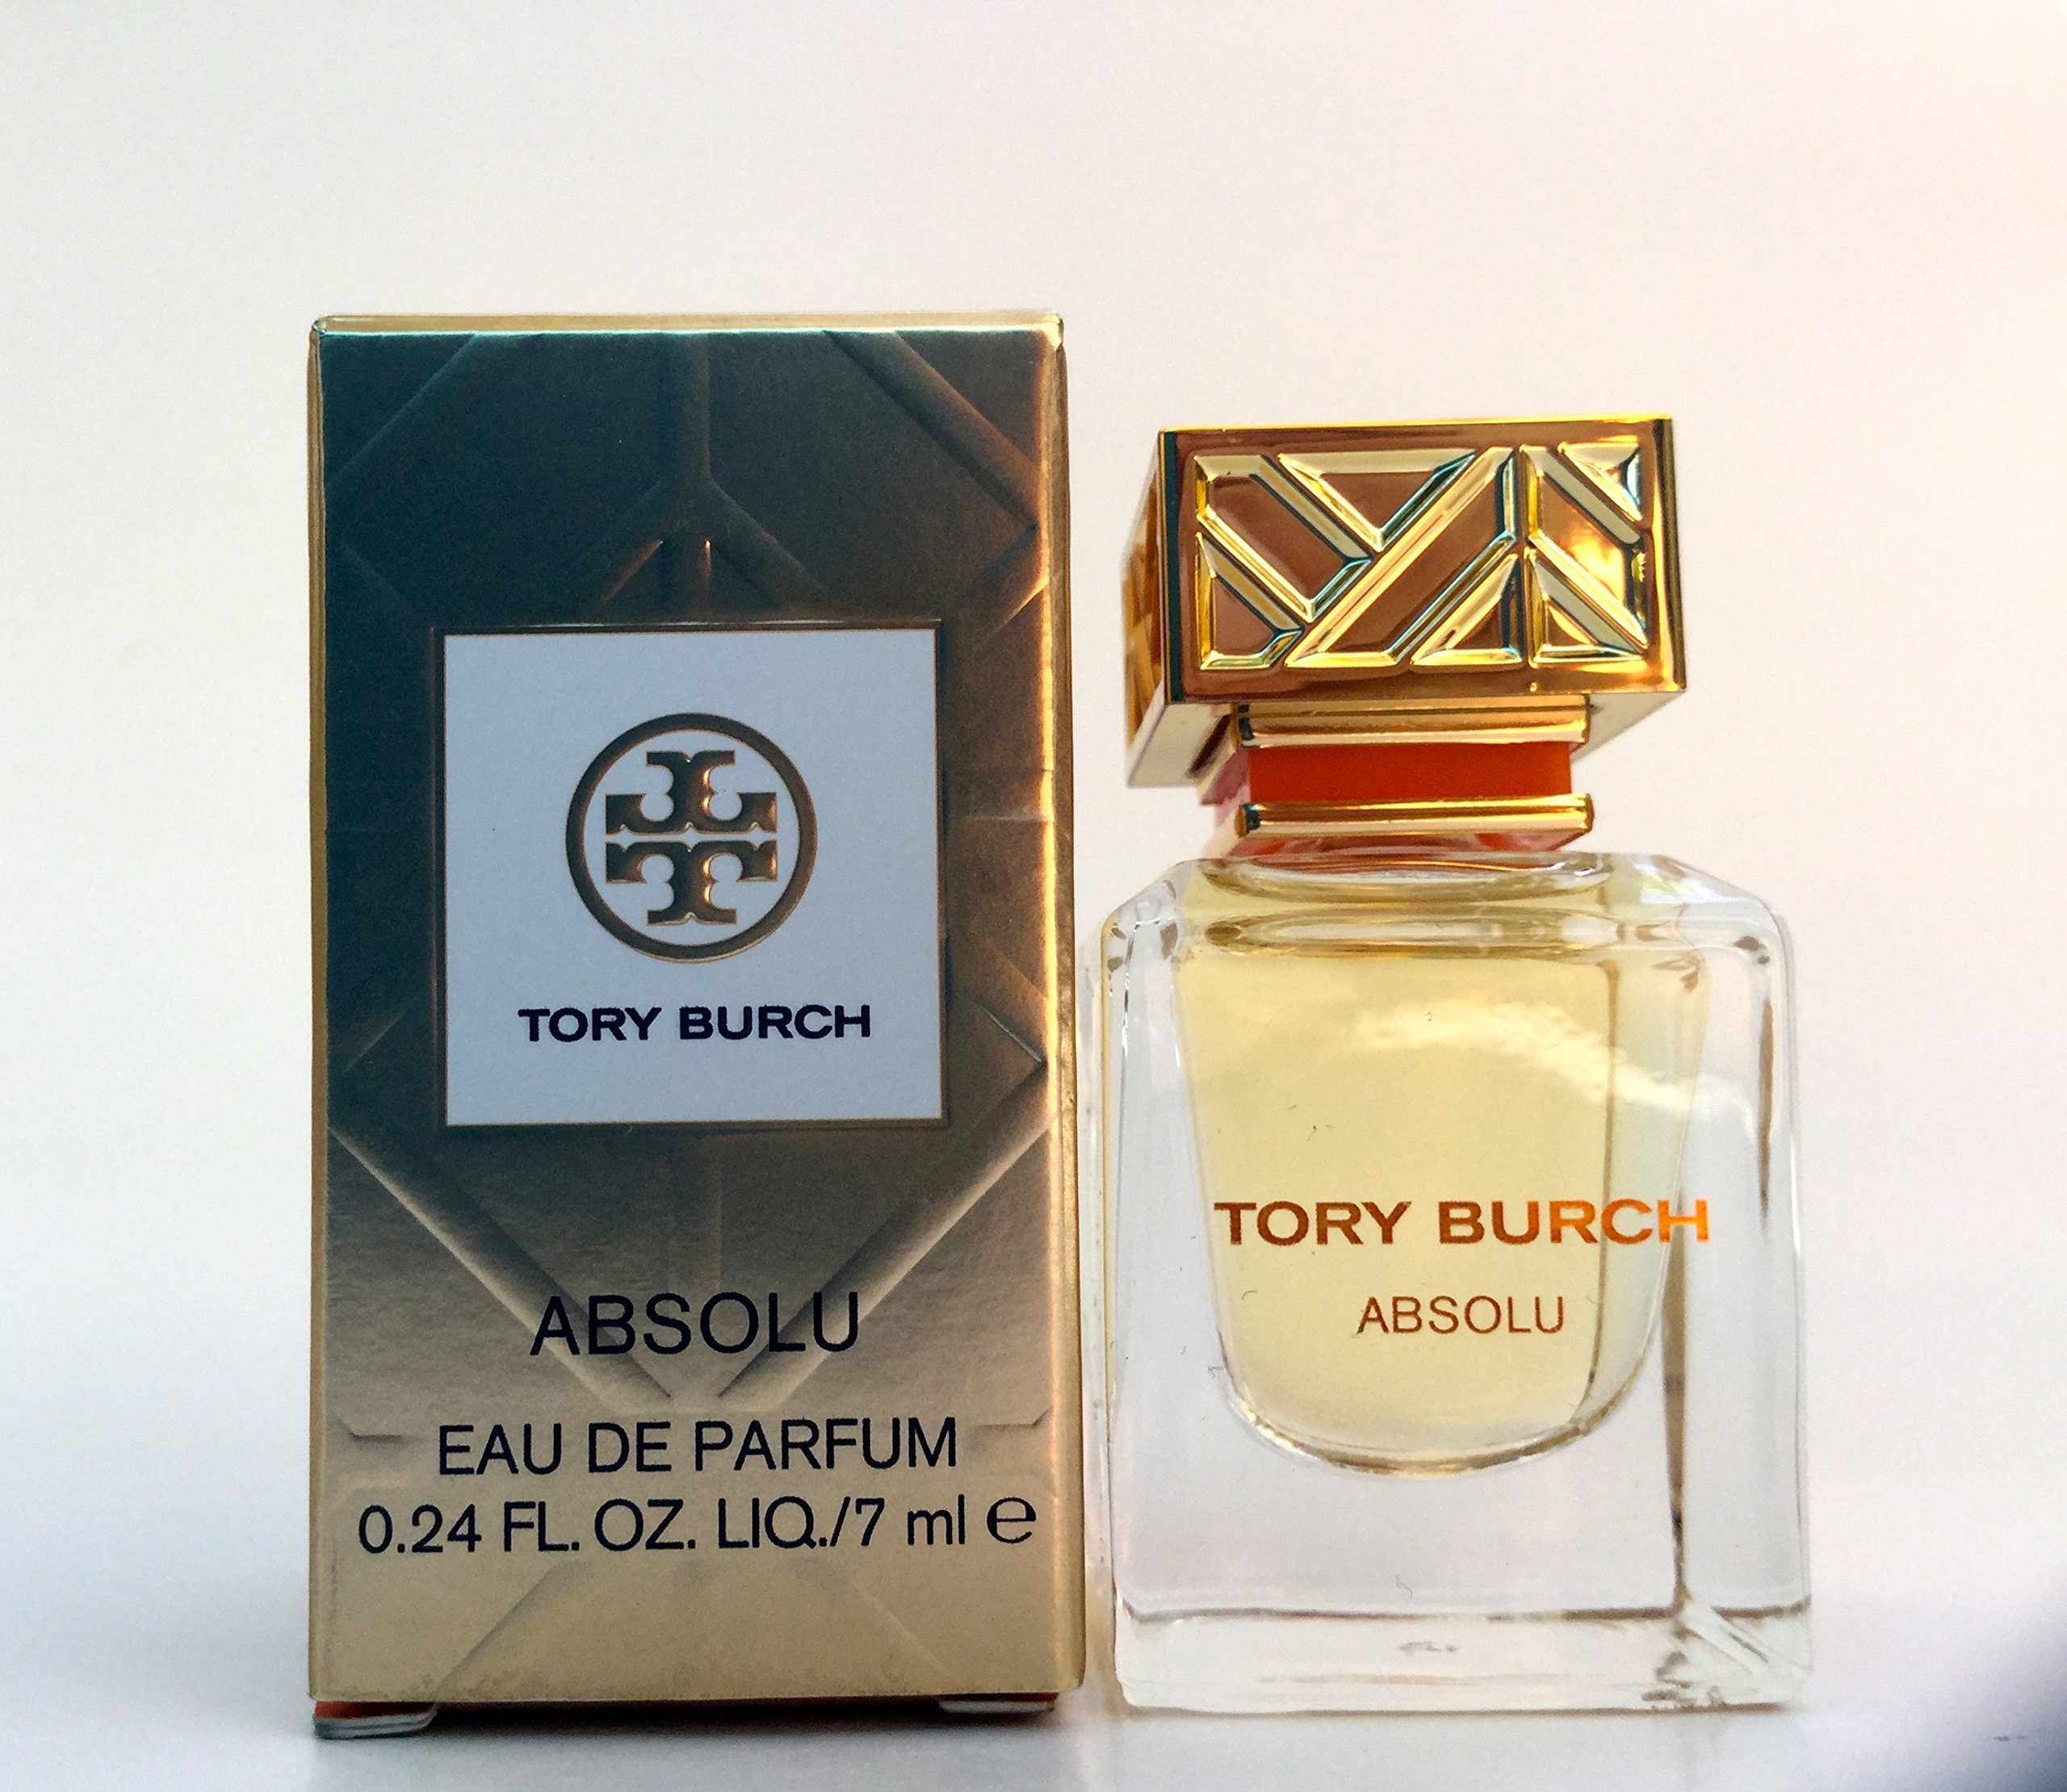 Tory Burch Absolu by Tory Burch for Women 7 ml./.24 oz Eau